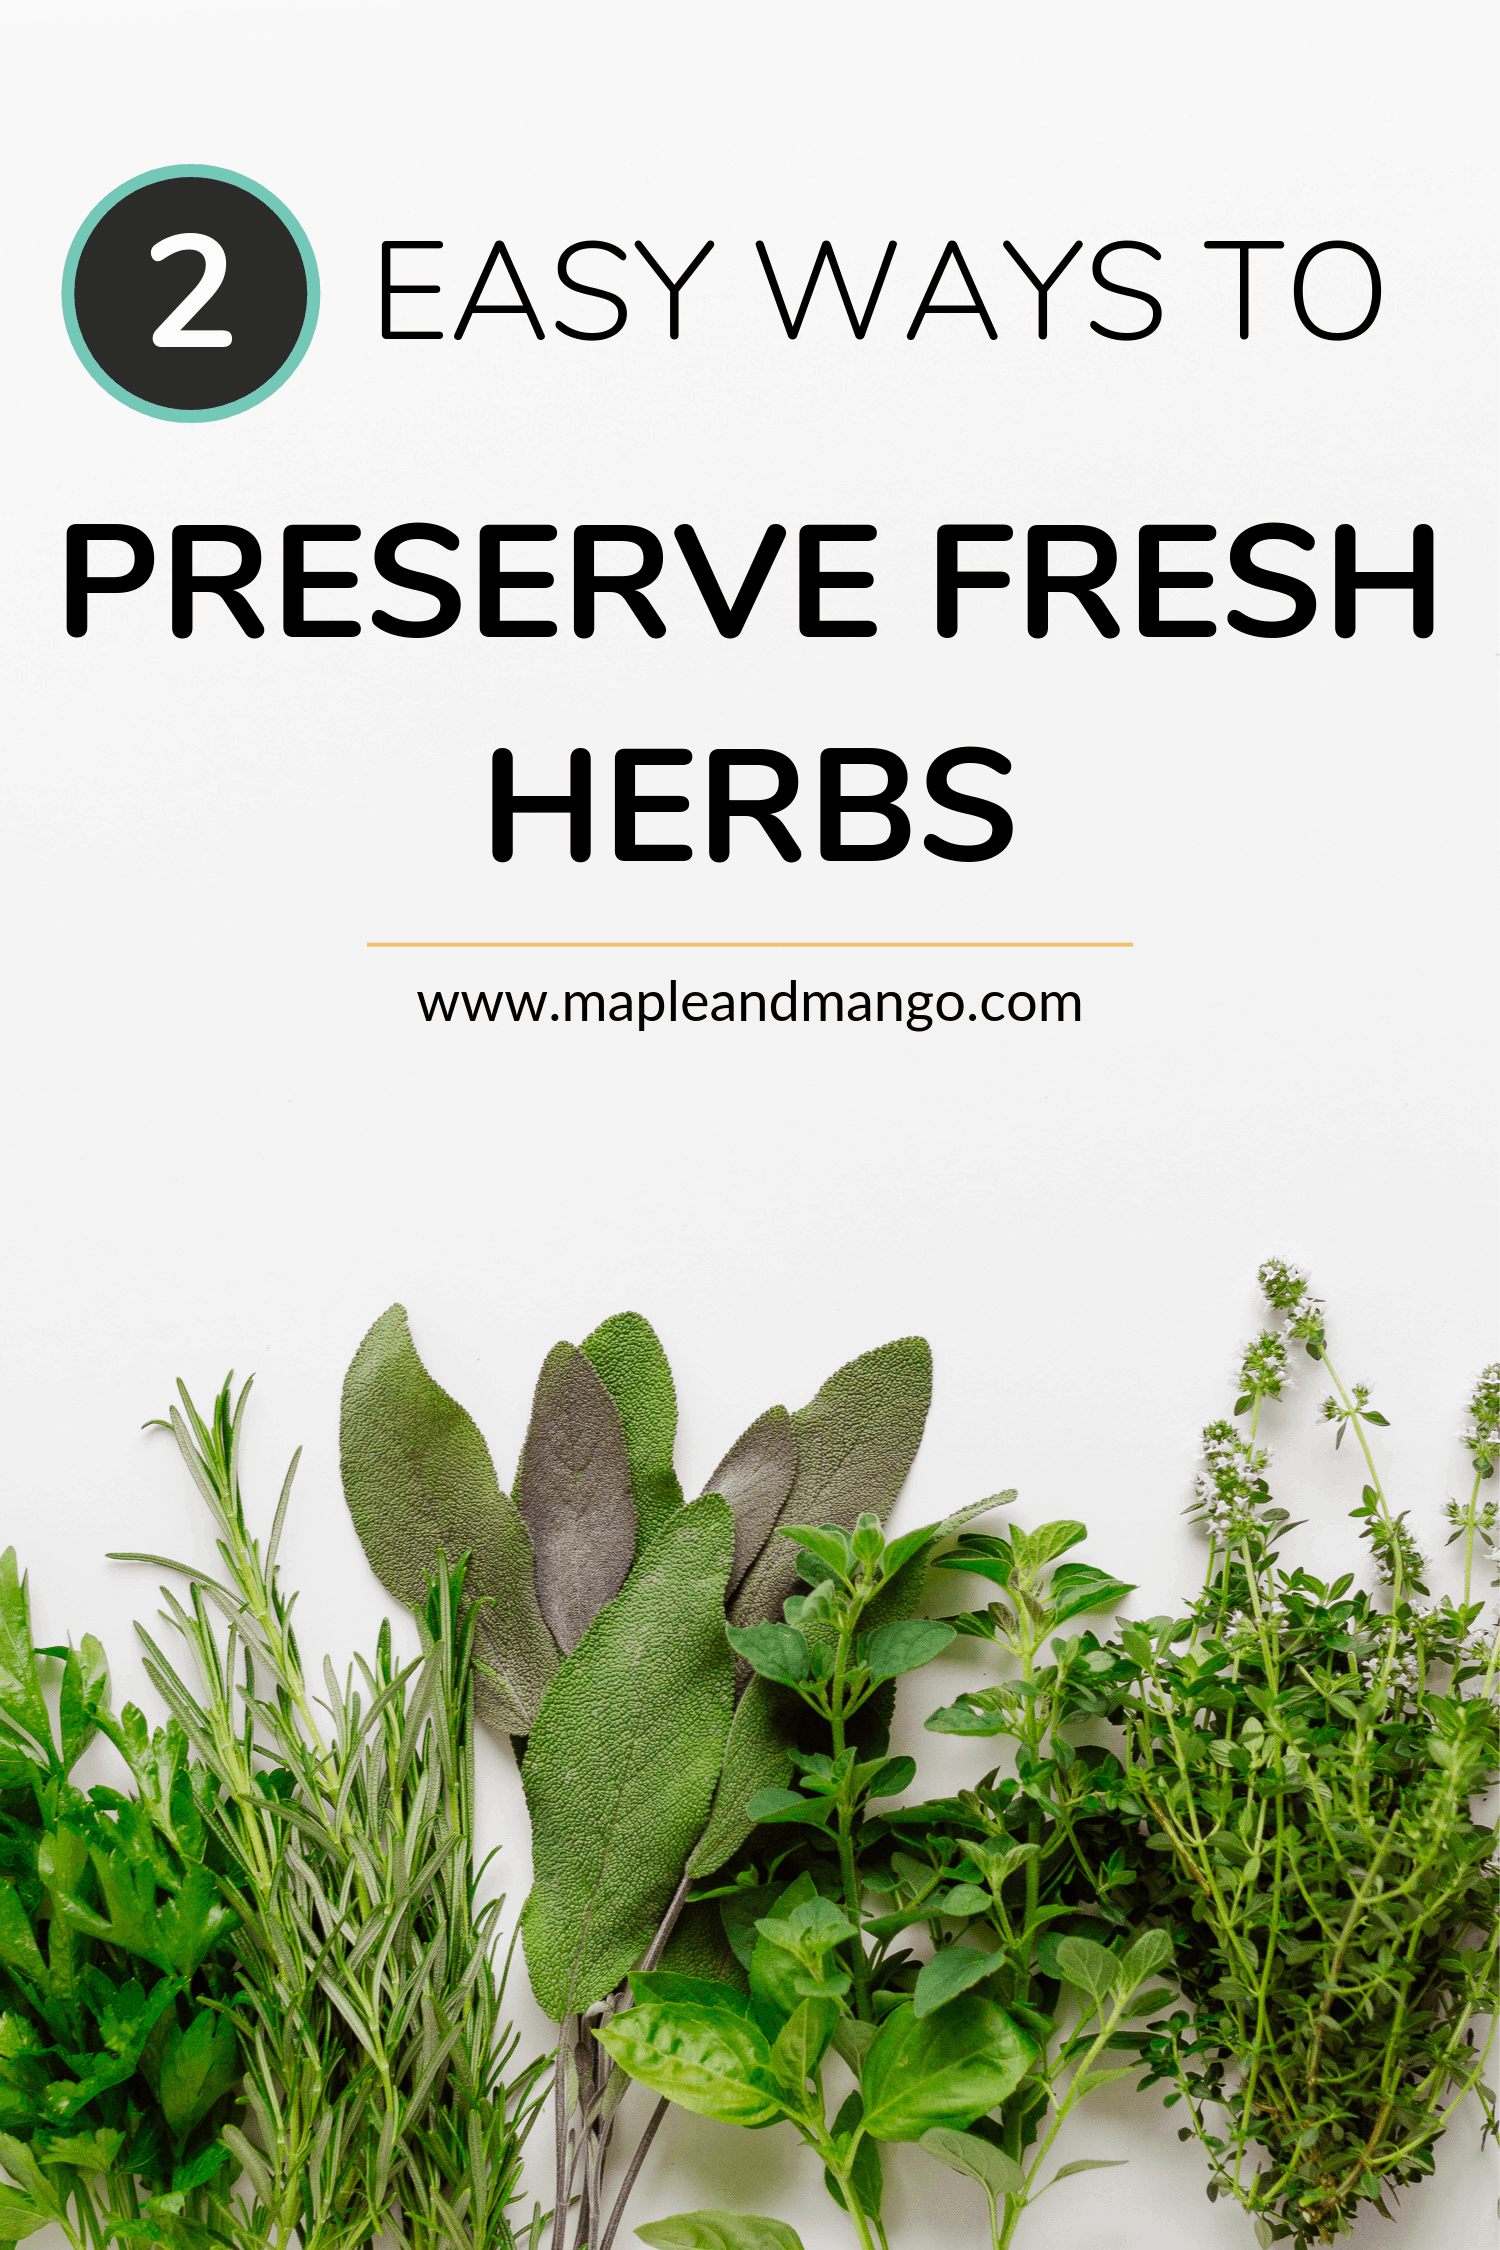 Pinterest Image for 2 Easy Ways to Preserve Fresh Herbs